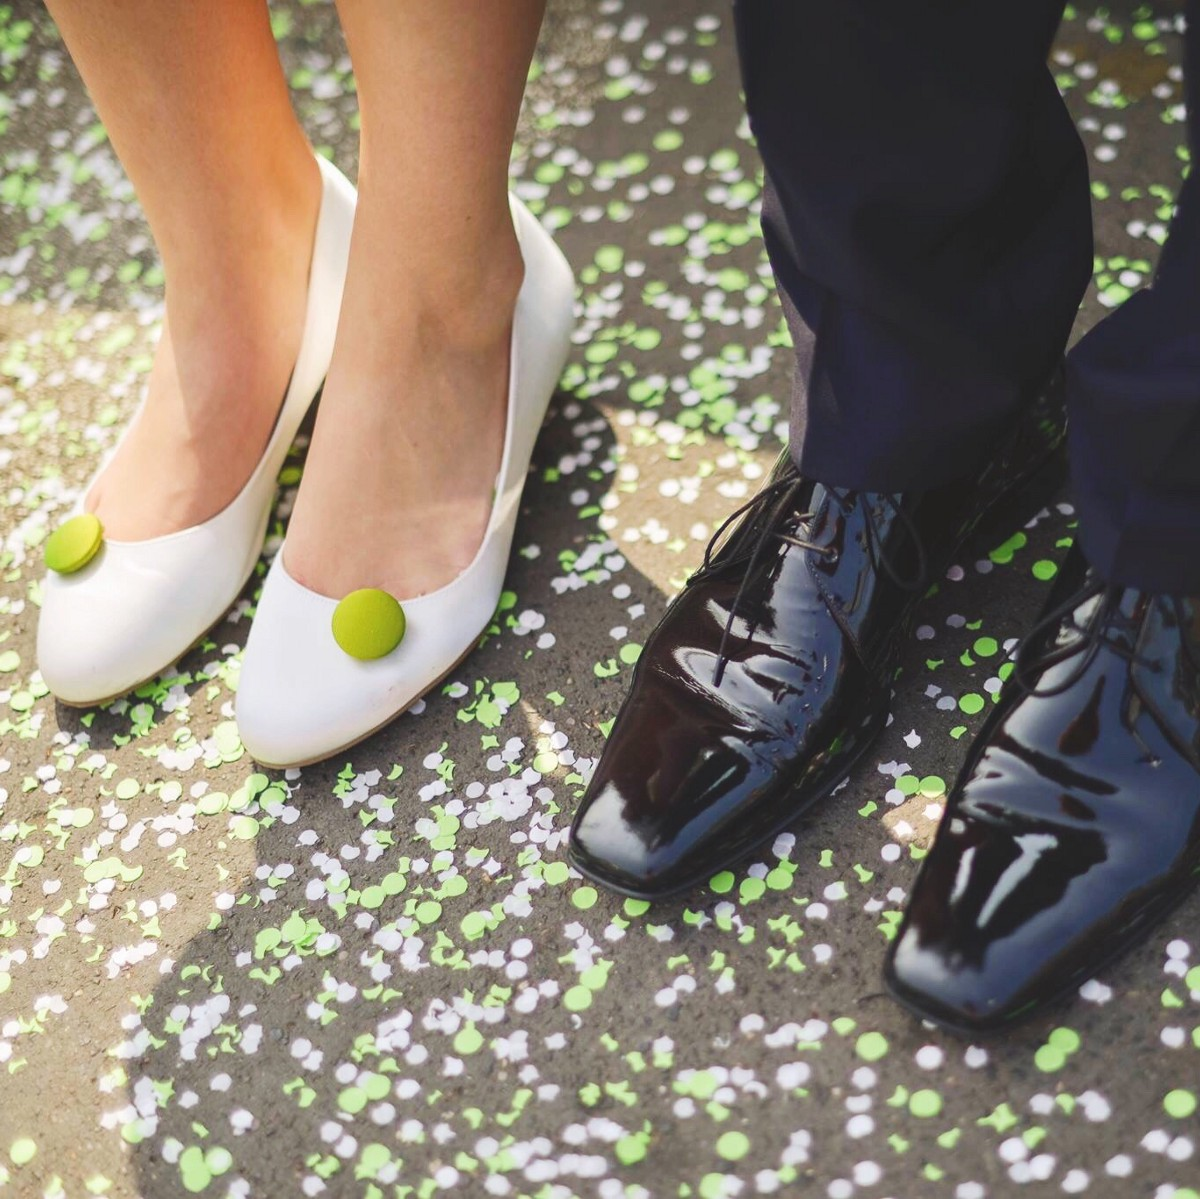 Why I Chose to Change My Last Name After Marrying My Wife